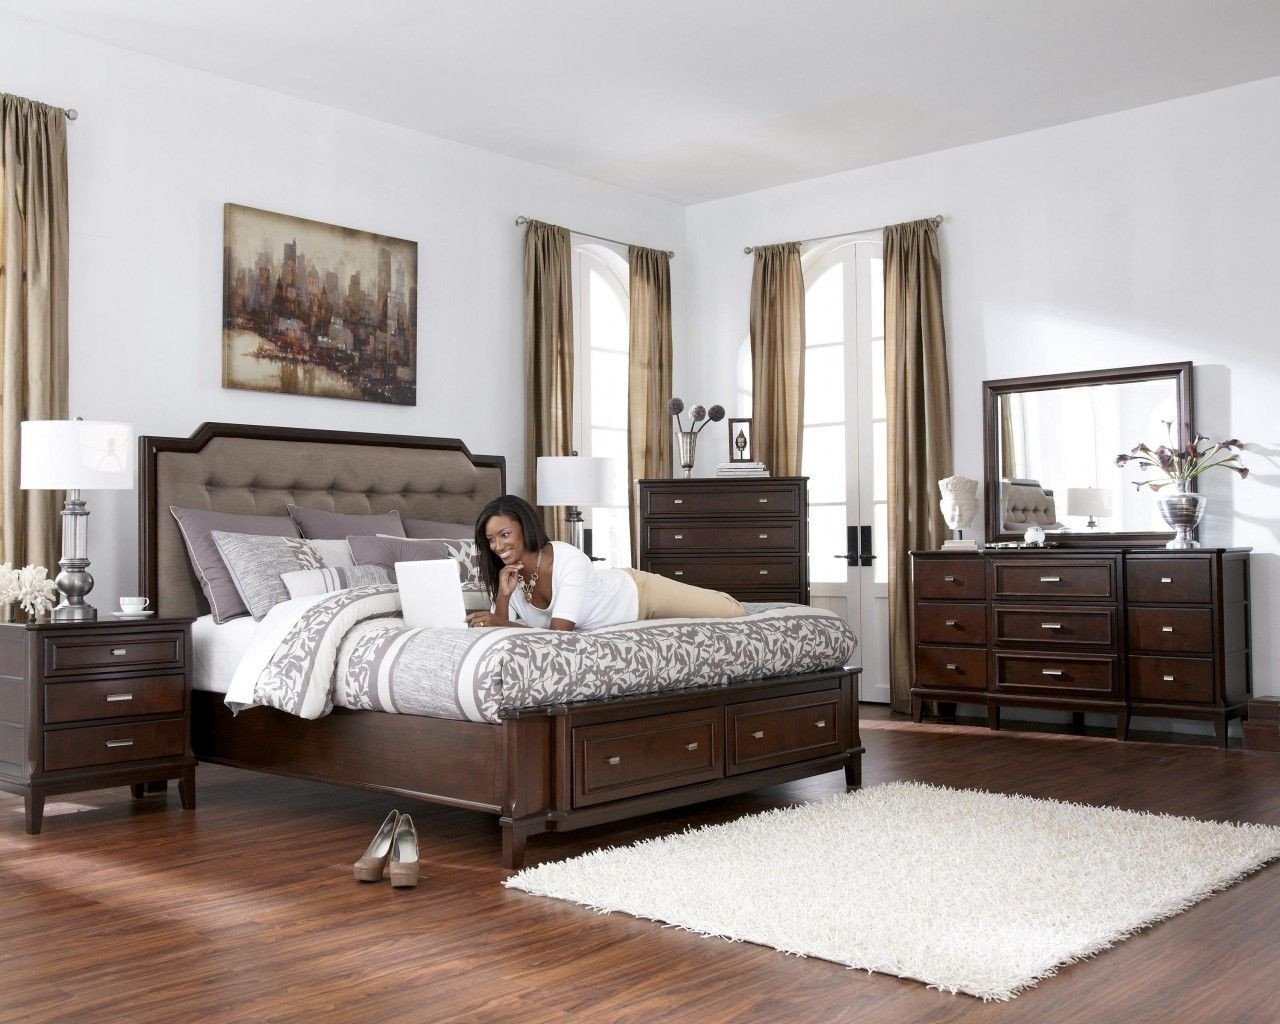 Dark Wood Bedroom Set Luxury Larimer Upholstered Storage Bedroom Set In Dark Brown